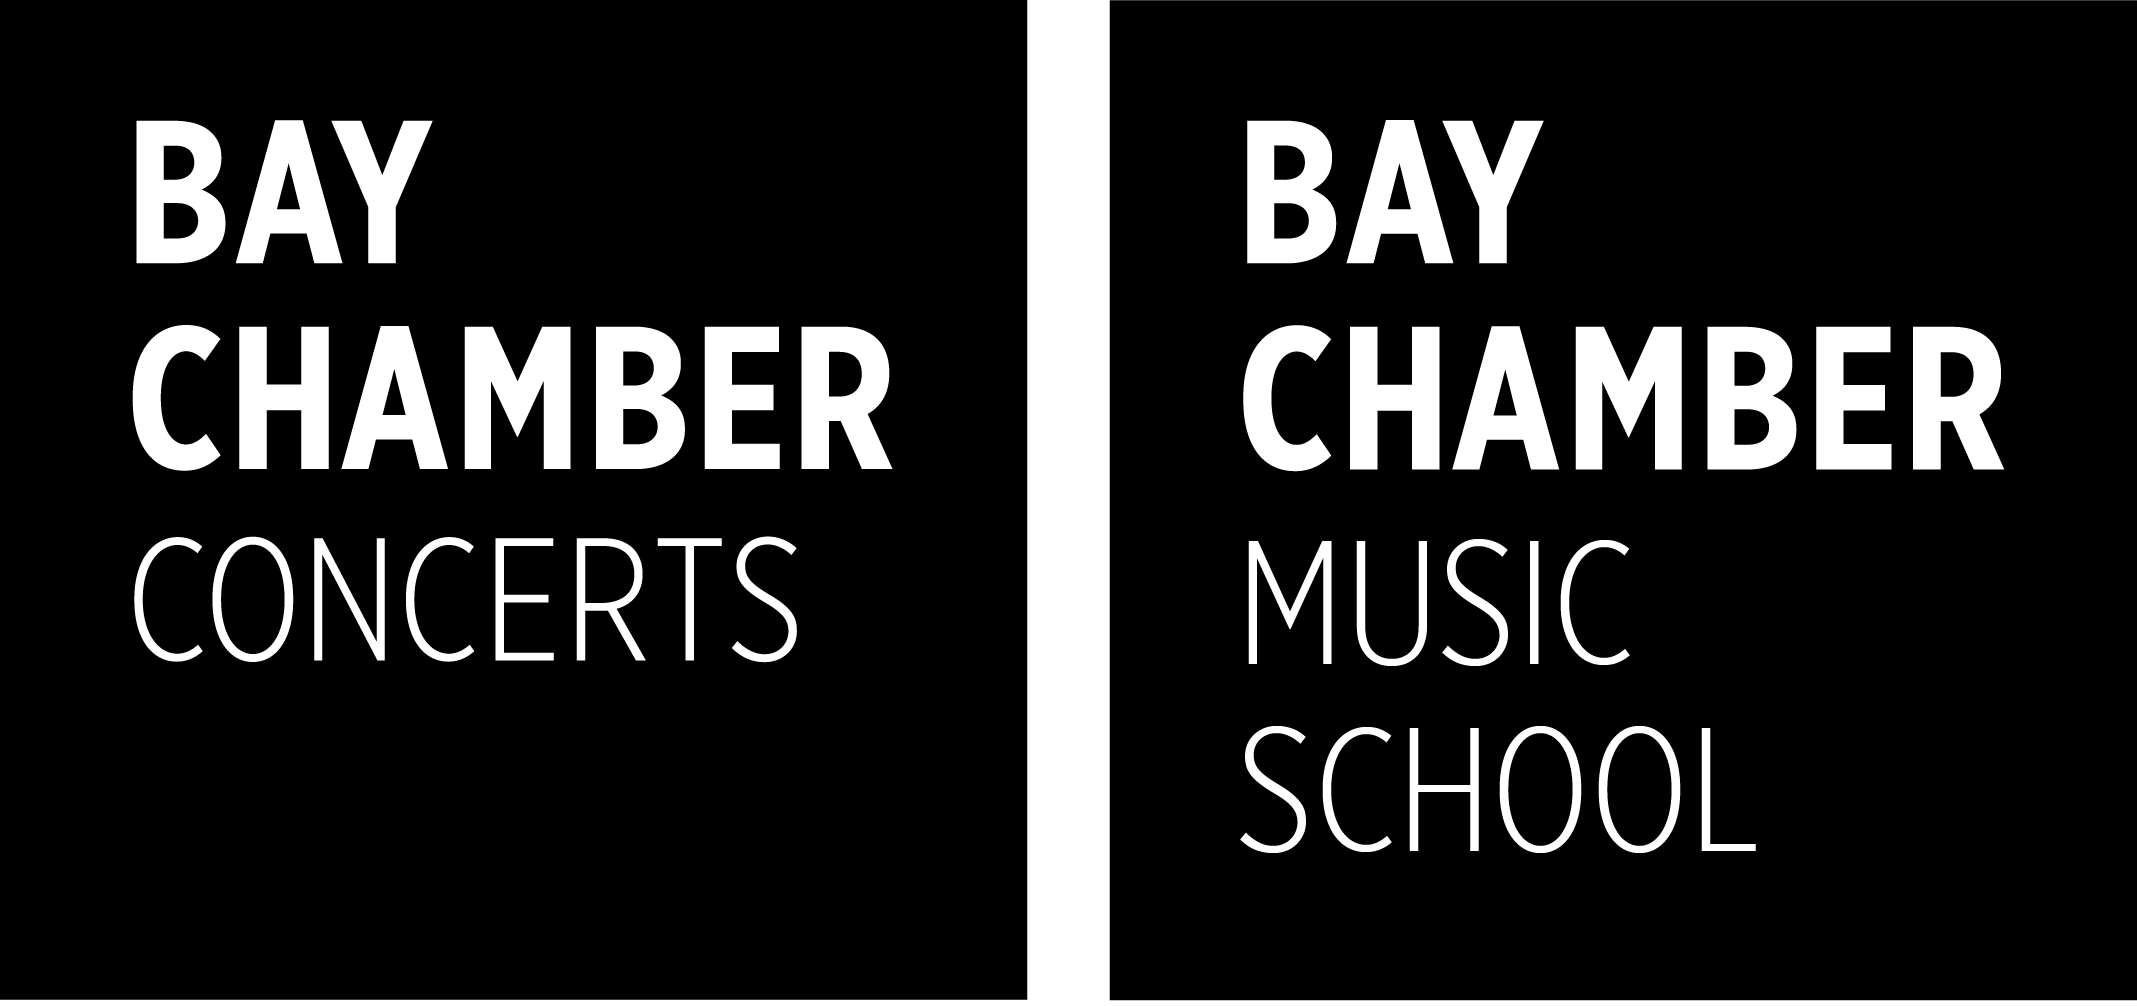 Bay Chamber Concerts and Music School